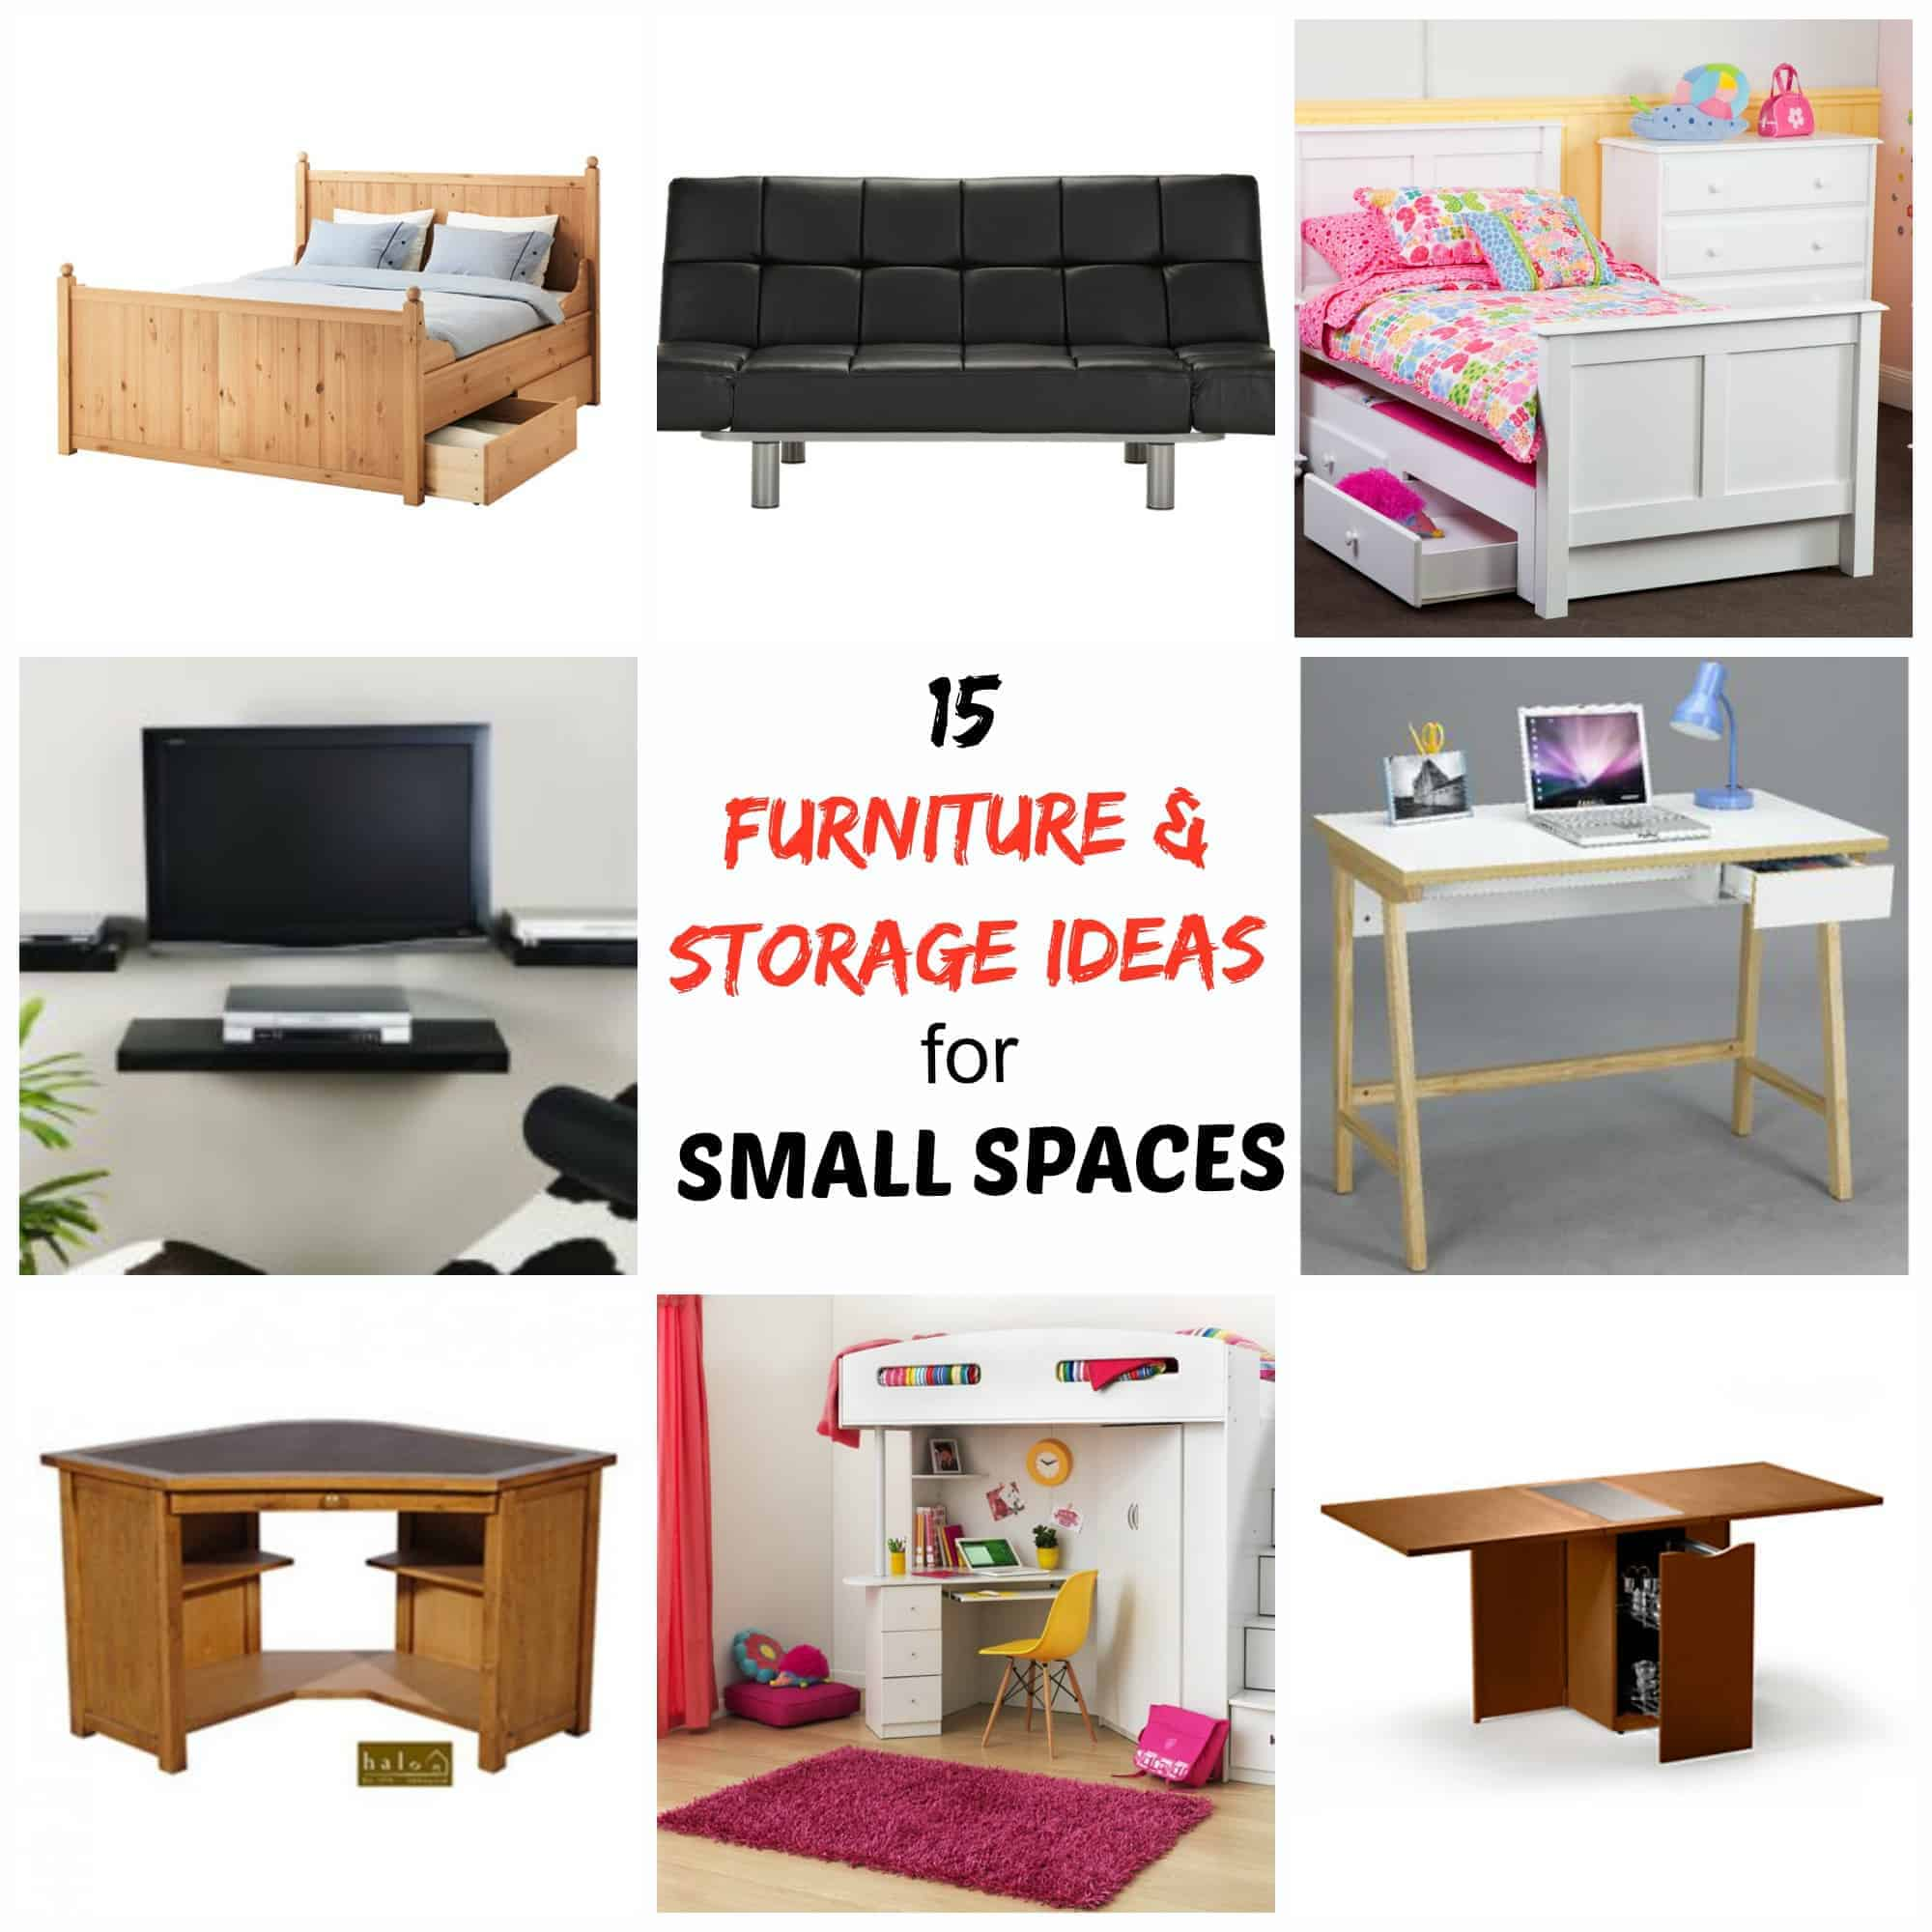 15 furniture storage ideas for small spaces simplify create inspire - Pinterest storage ideas for small spaces ideas ...